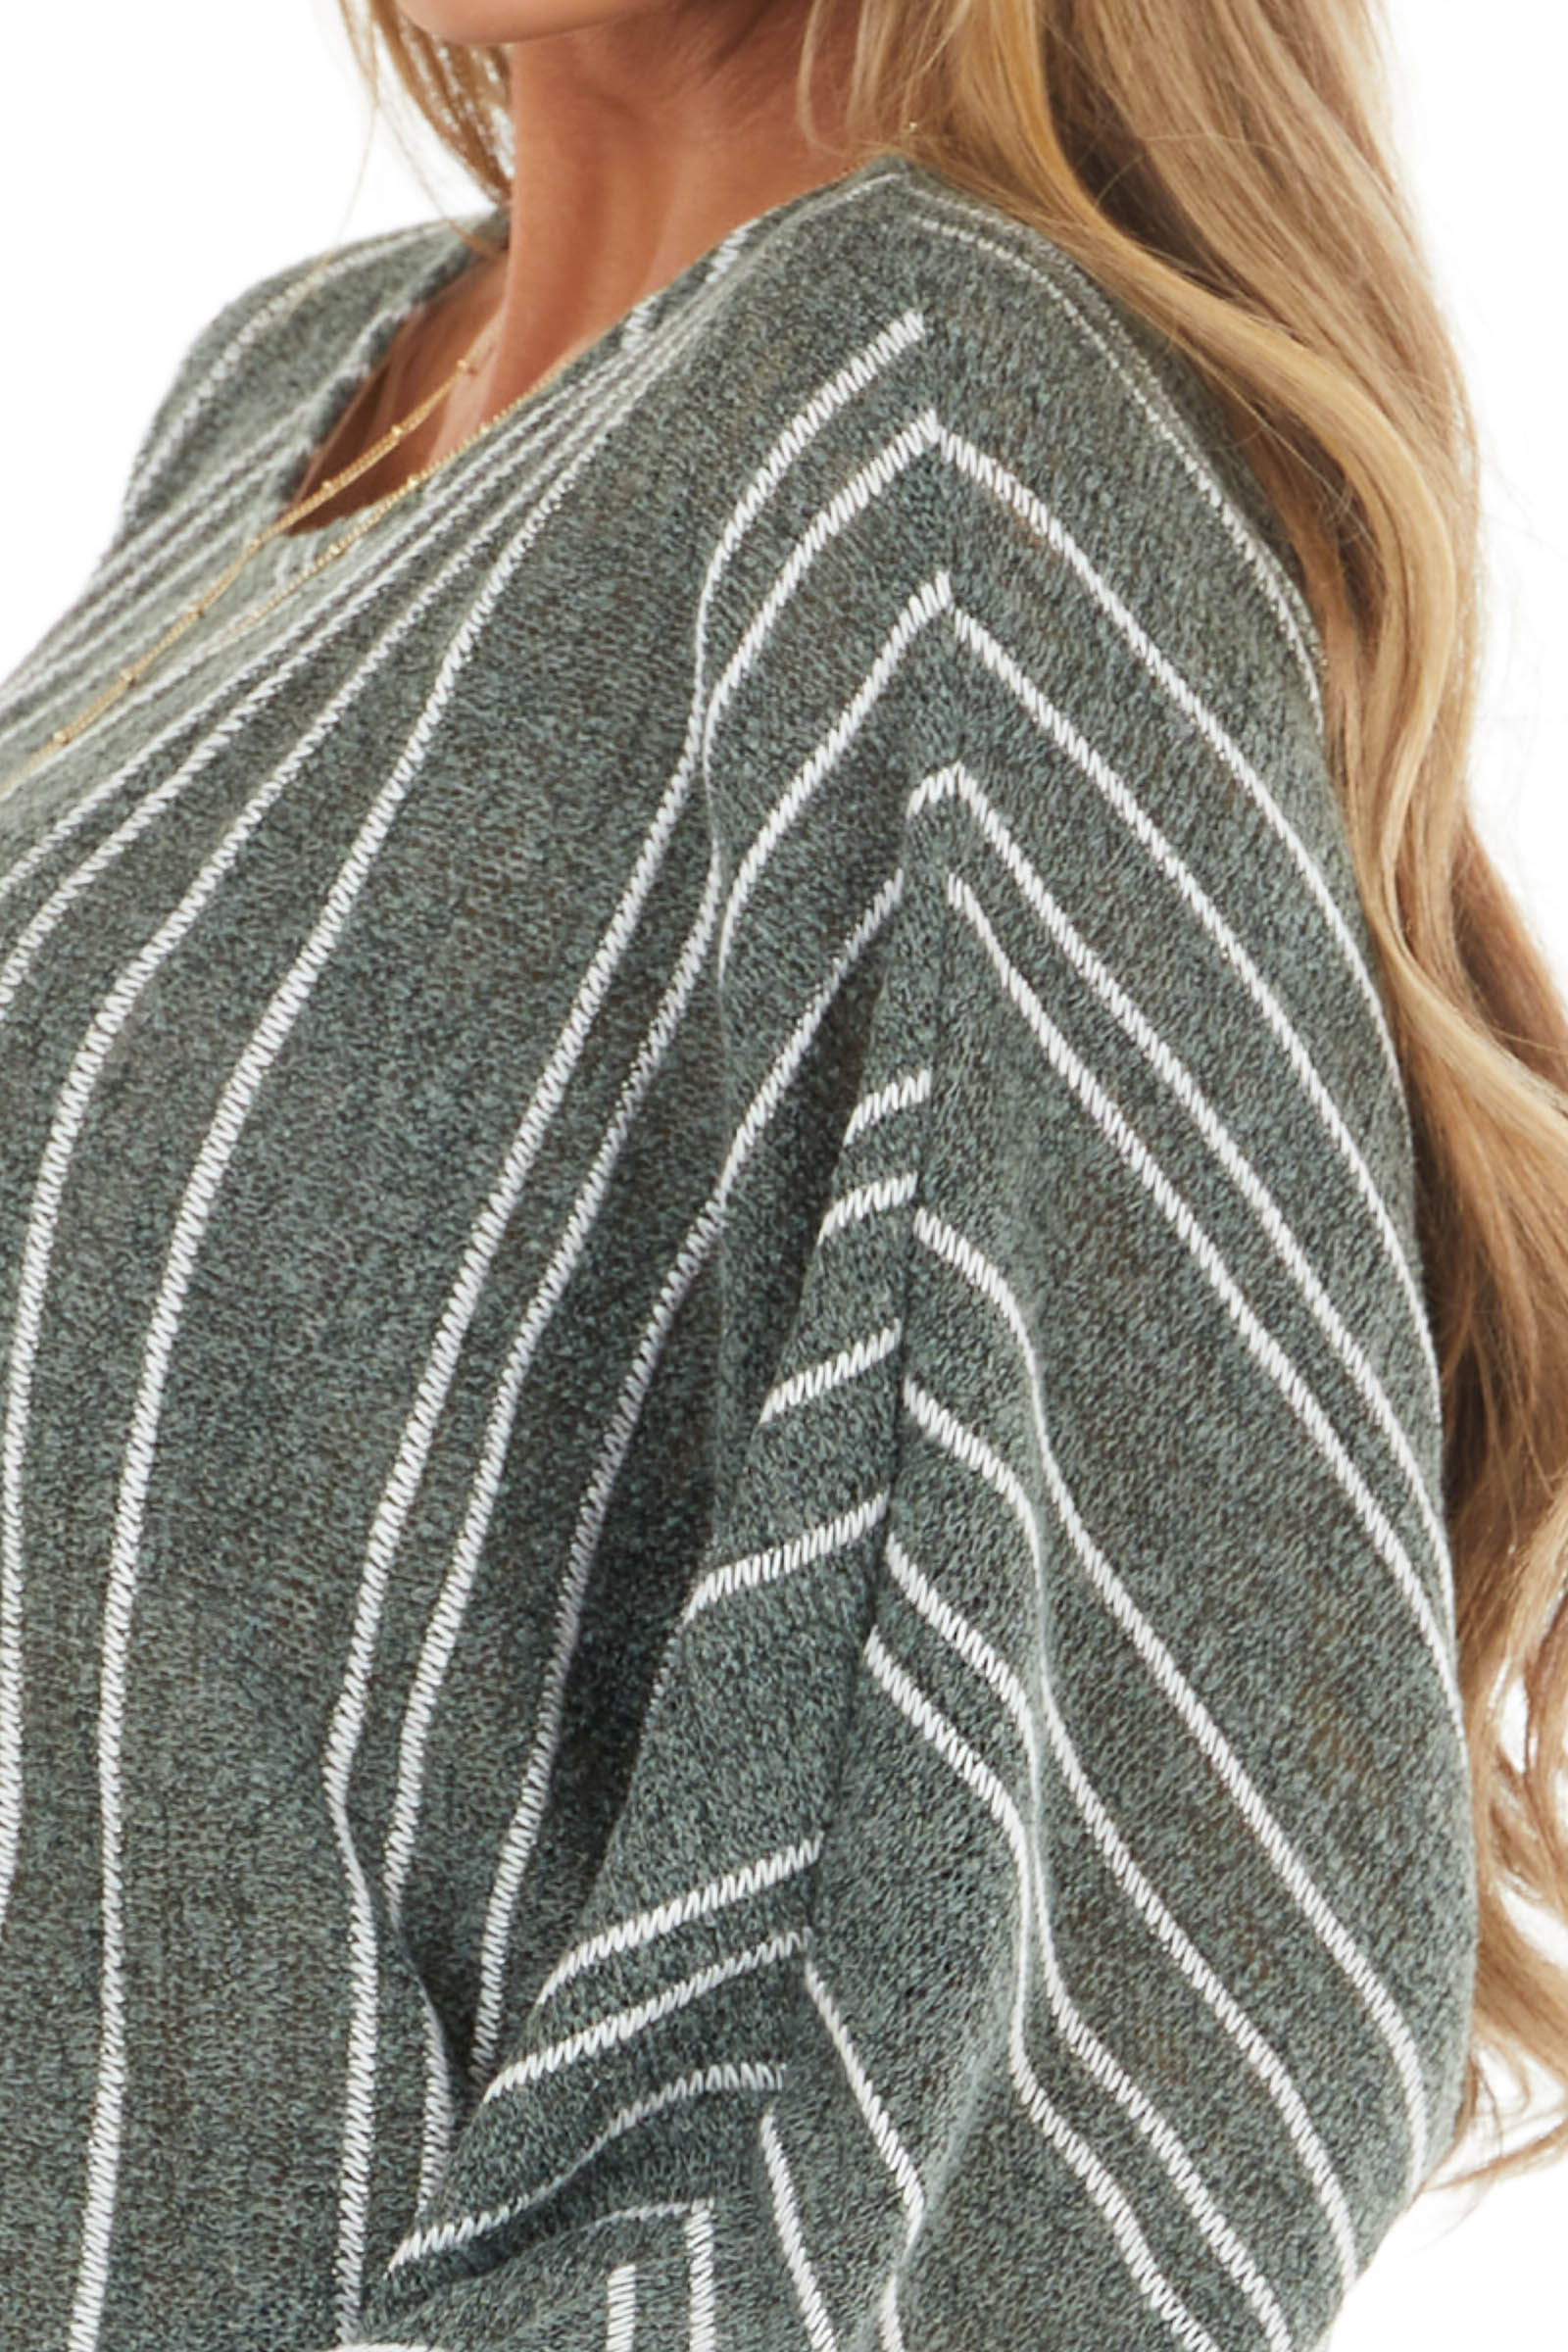 Dusty Olive Striped Loose Knit Sweater with Dolman Sleeves